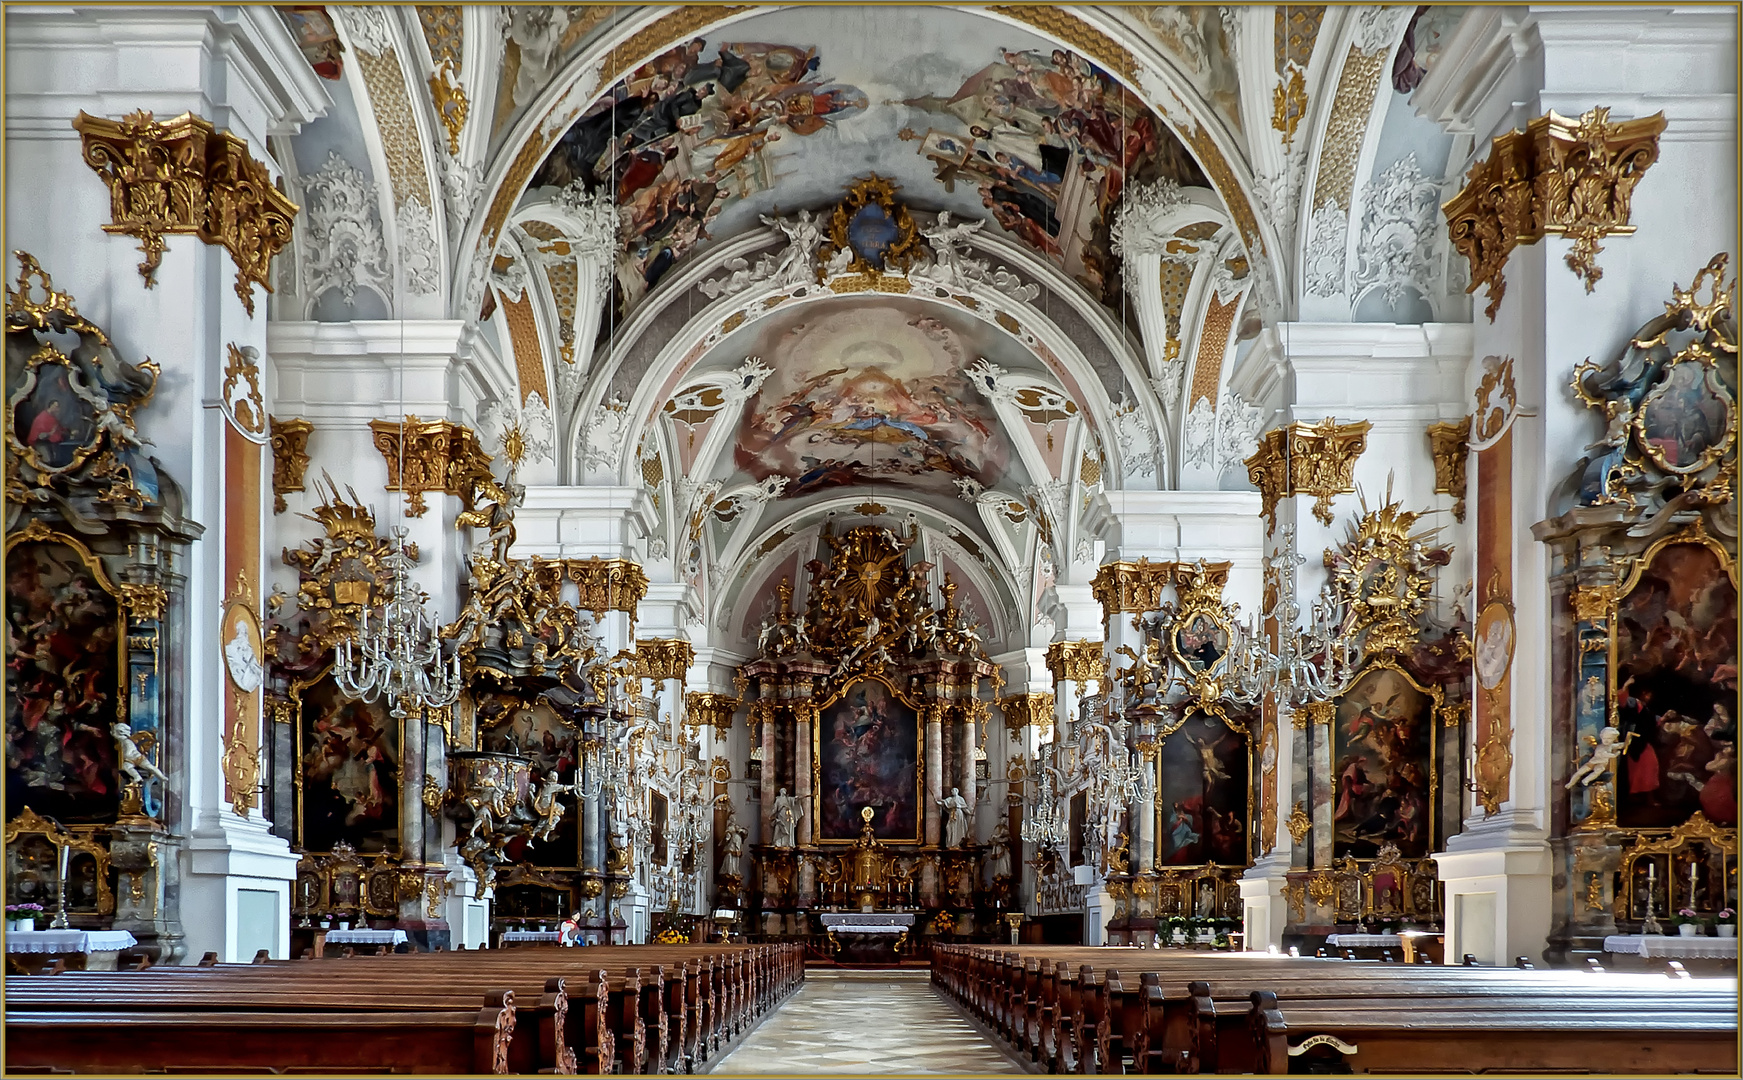 dillingen an der donau studienkirche maria himmelfahrt ehemalige jesuitenkirche foto bild. Black Bedroom Furniture Sets. Home Design Ideas